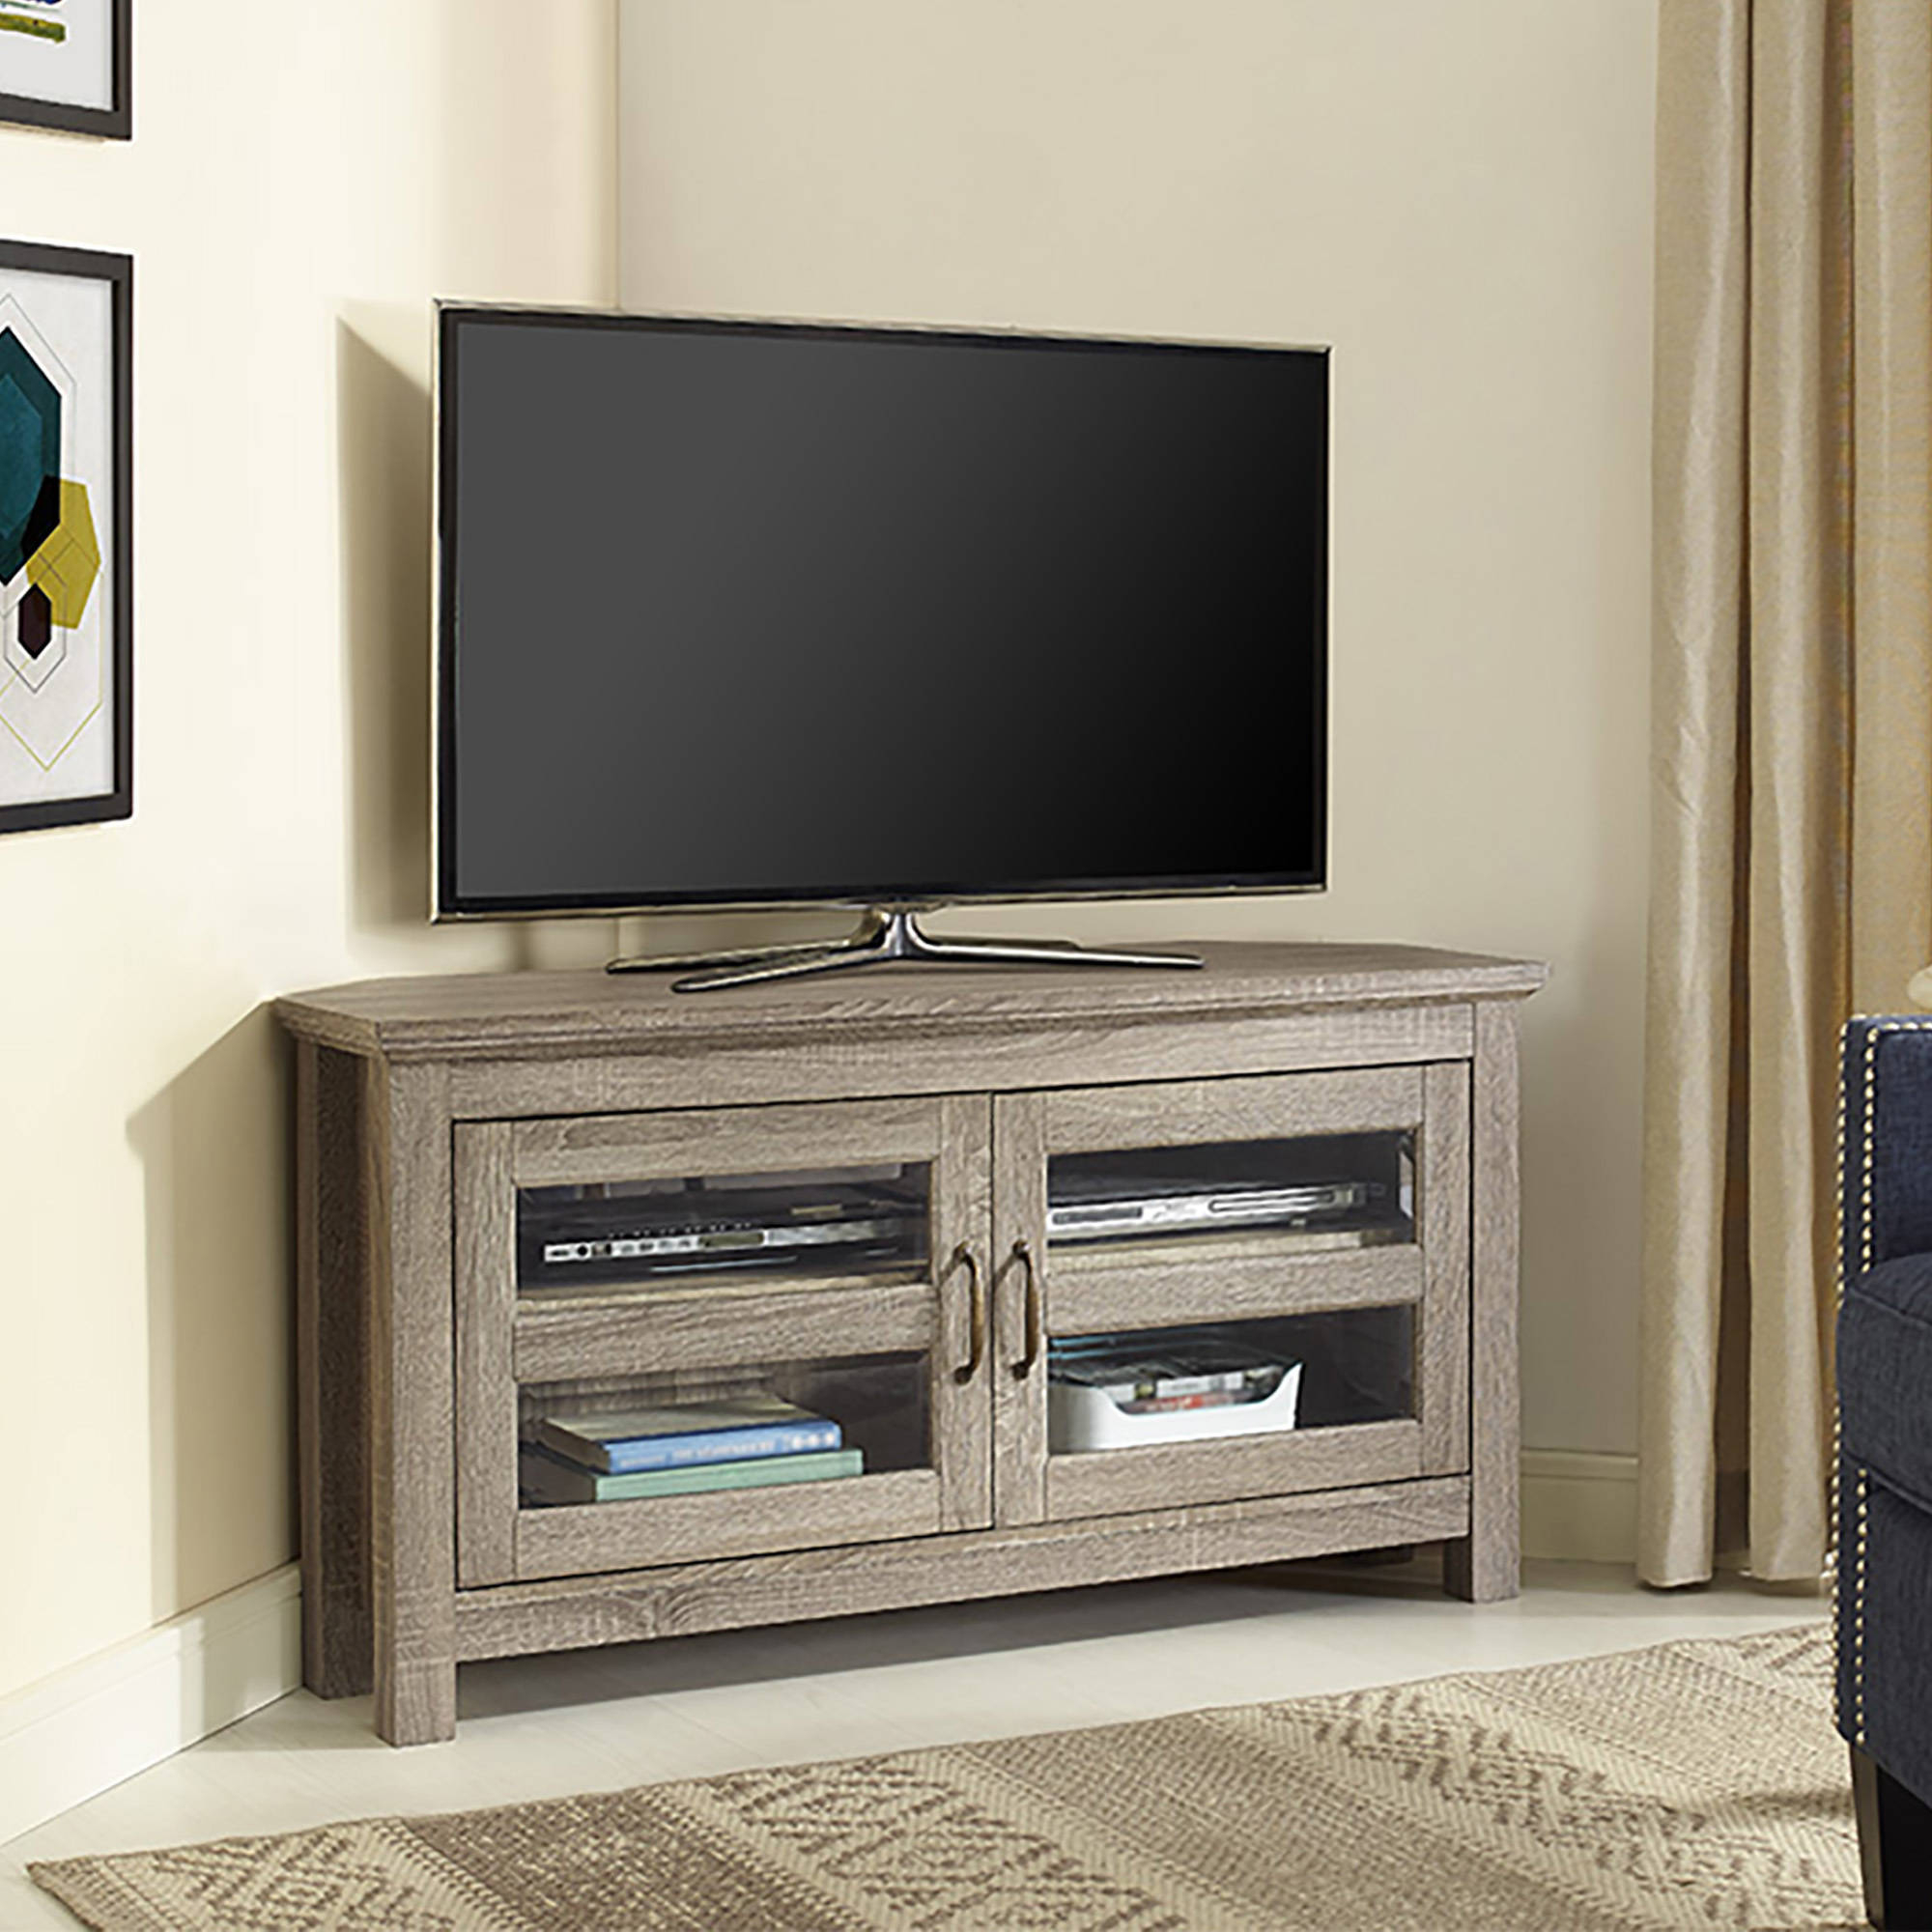 Tv Stand With Mount Corner Stands Wood Armoire Flat Panel Fireplace Inside Most Popular Tv Stands For Corners (View 12 of 20)